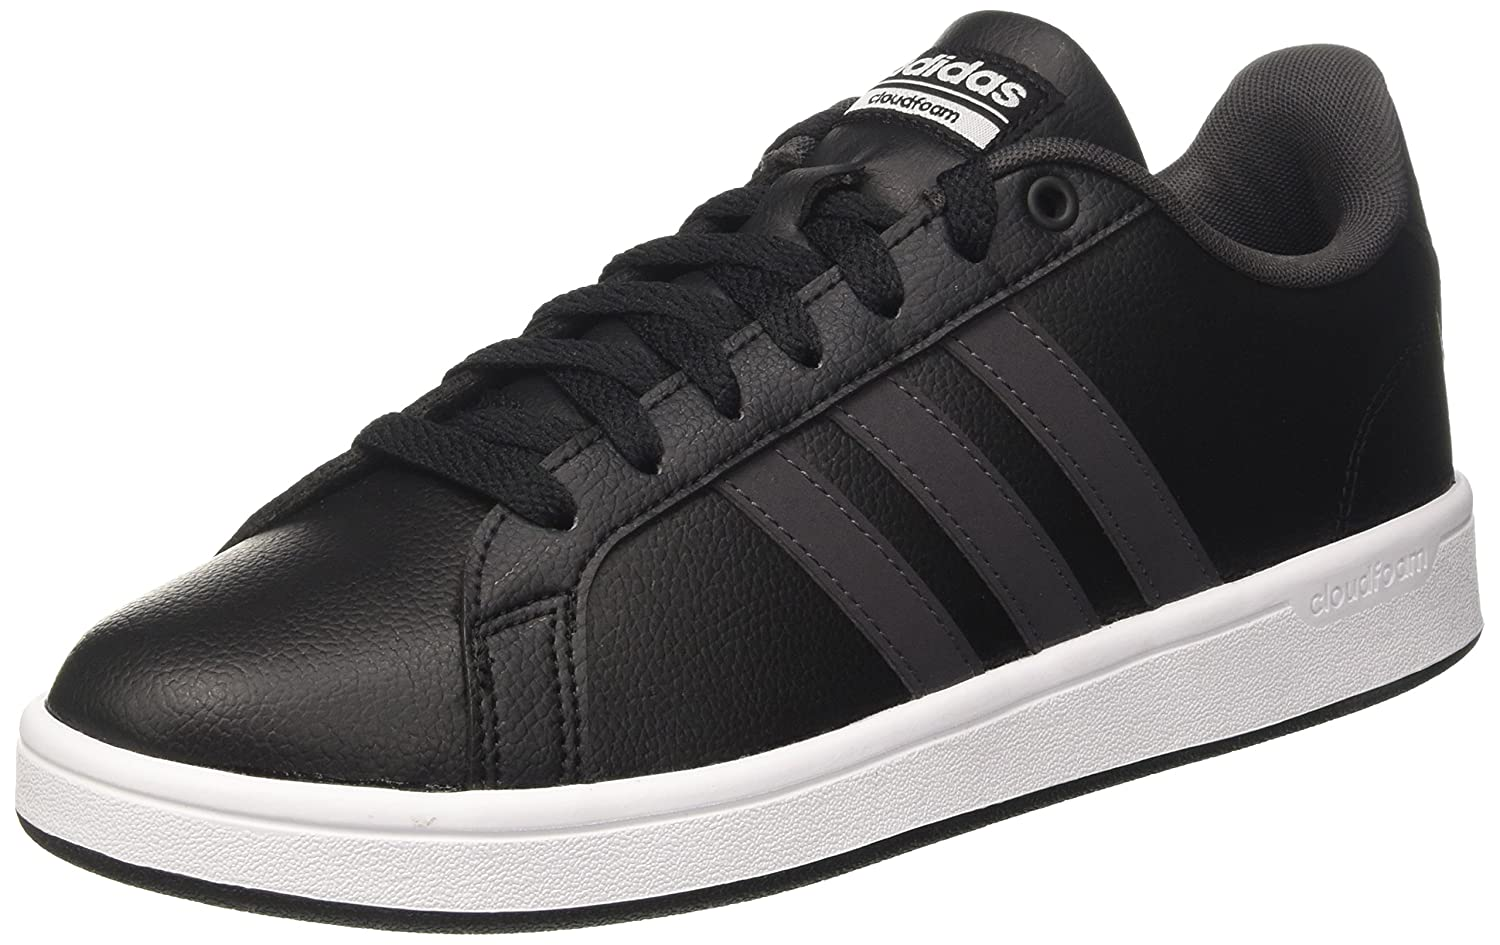 check out ece7e 7abe3 ... coupon for adidas cloudfoam advantage herren sneakers 41 1 3  eumehrfarbig core black f2422 1e014